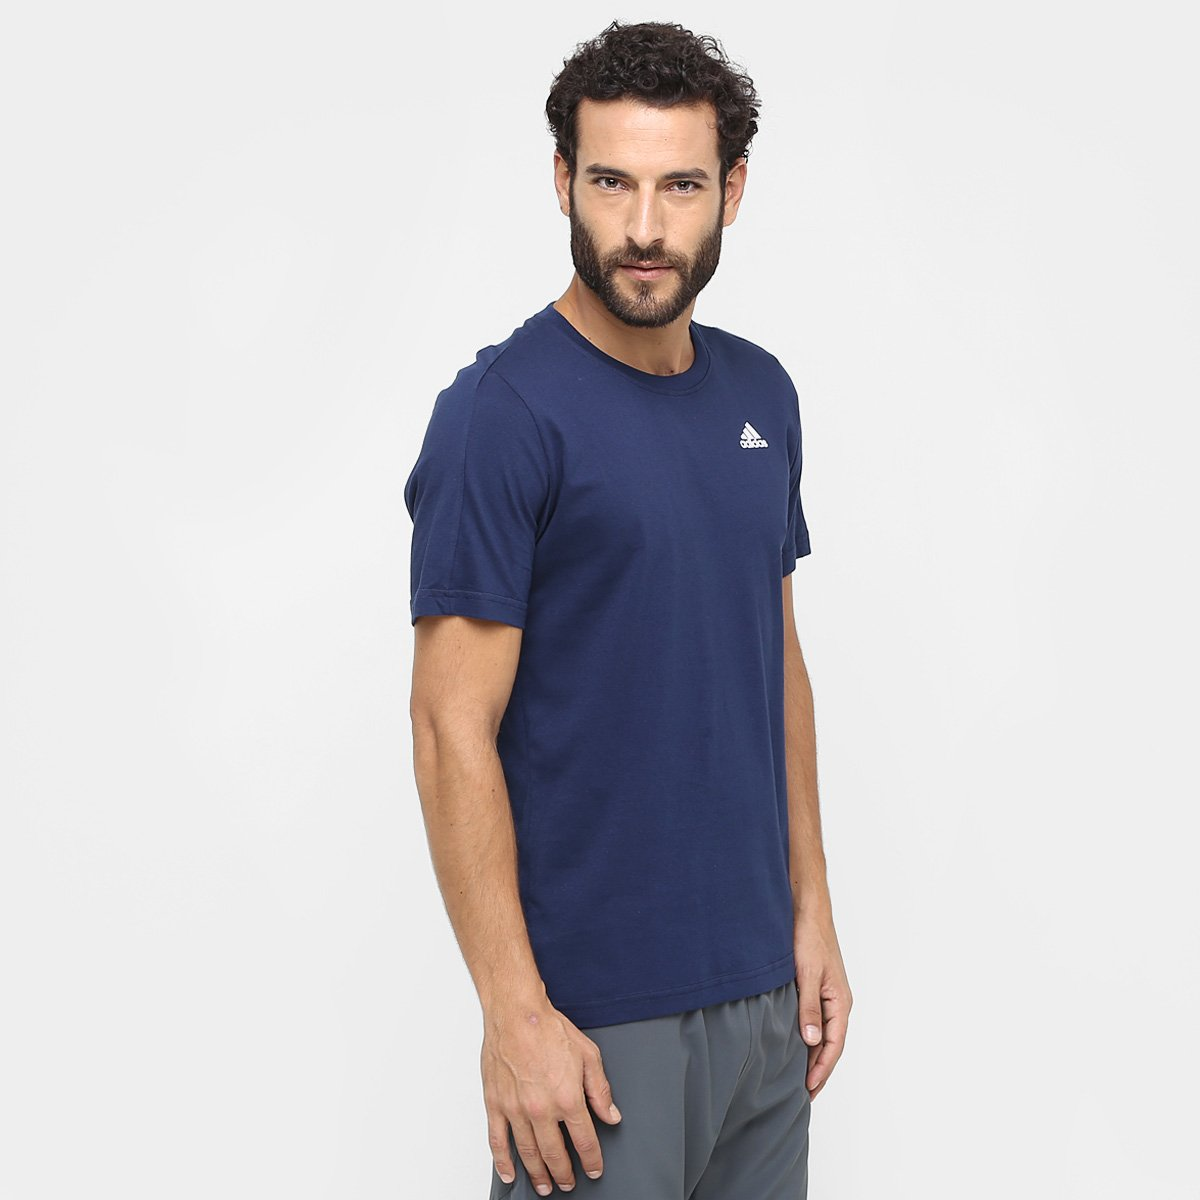 a090ceb08 Camiseta Adidas Essential Base Masculina | Allianz Parque Shop